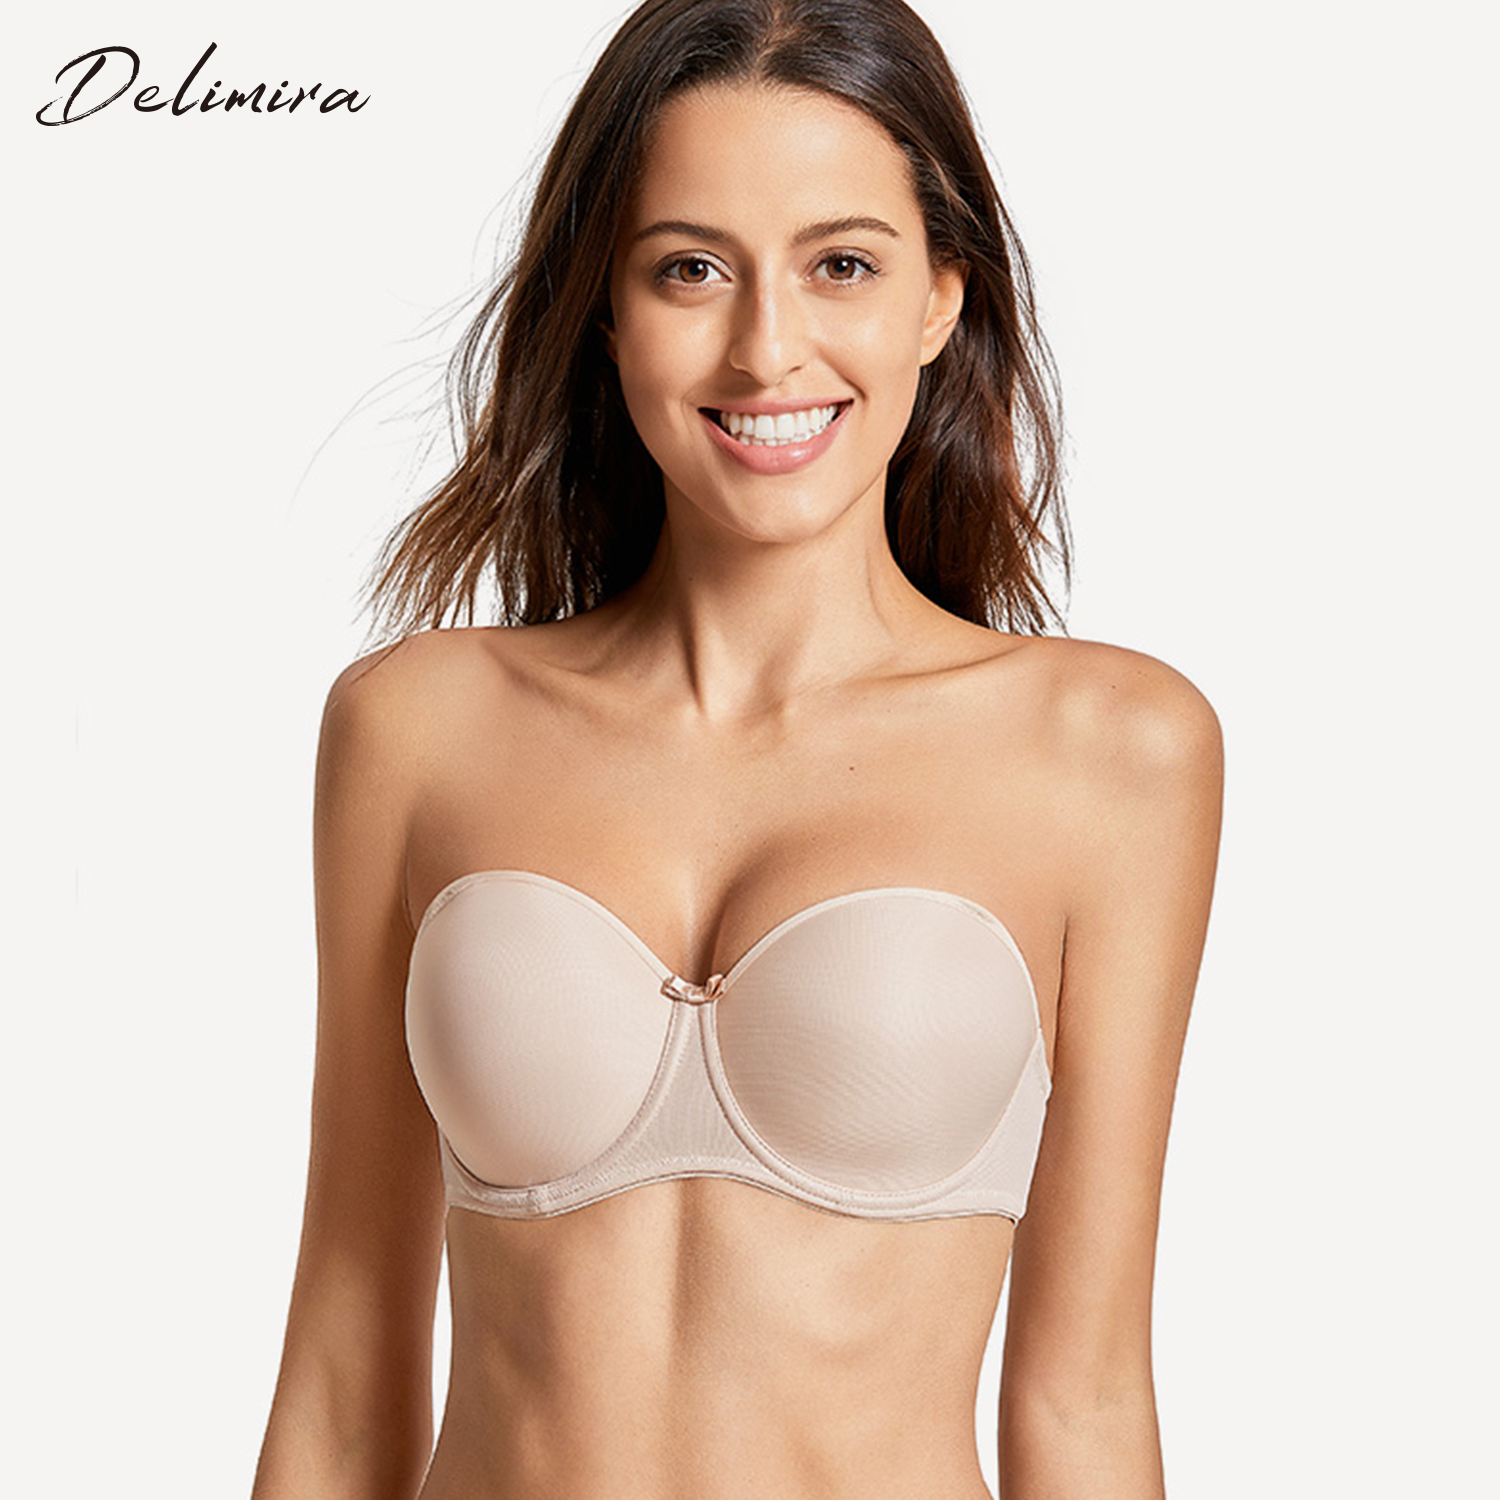 4a14af9a377 Detail Feedback Questions about DELIMIRA Women s Seamless Full Figure  Underwire Slightly Padded Multiway Strapless Bra on Aliexpress.com